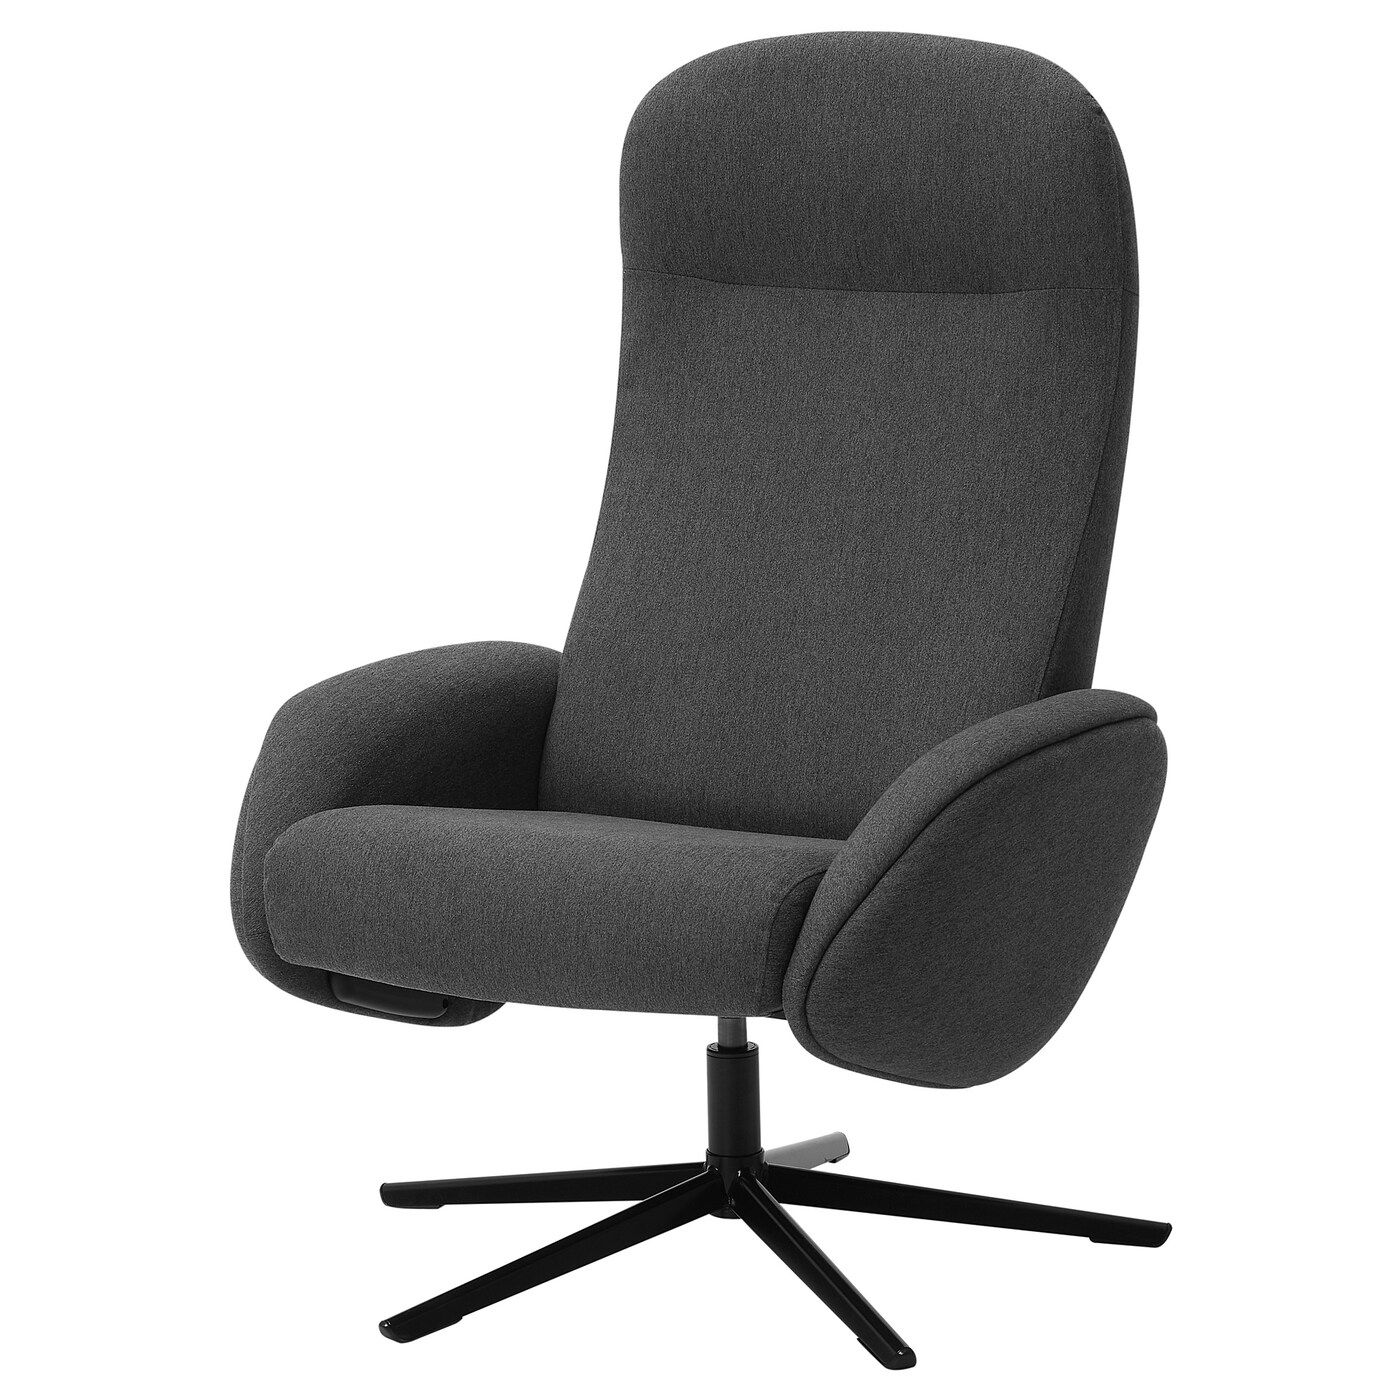 Nattraby Swivel Recliner Lysed Dark Gray Ikea In 2020 Fernsehsessel Sessel Ikea